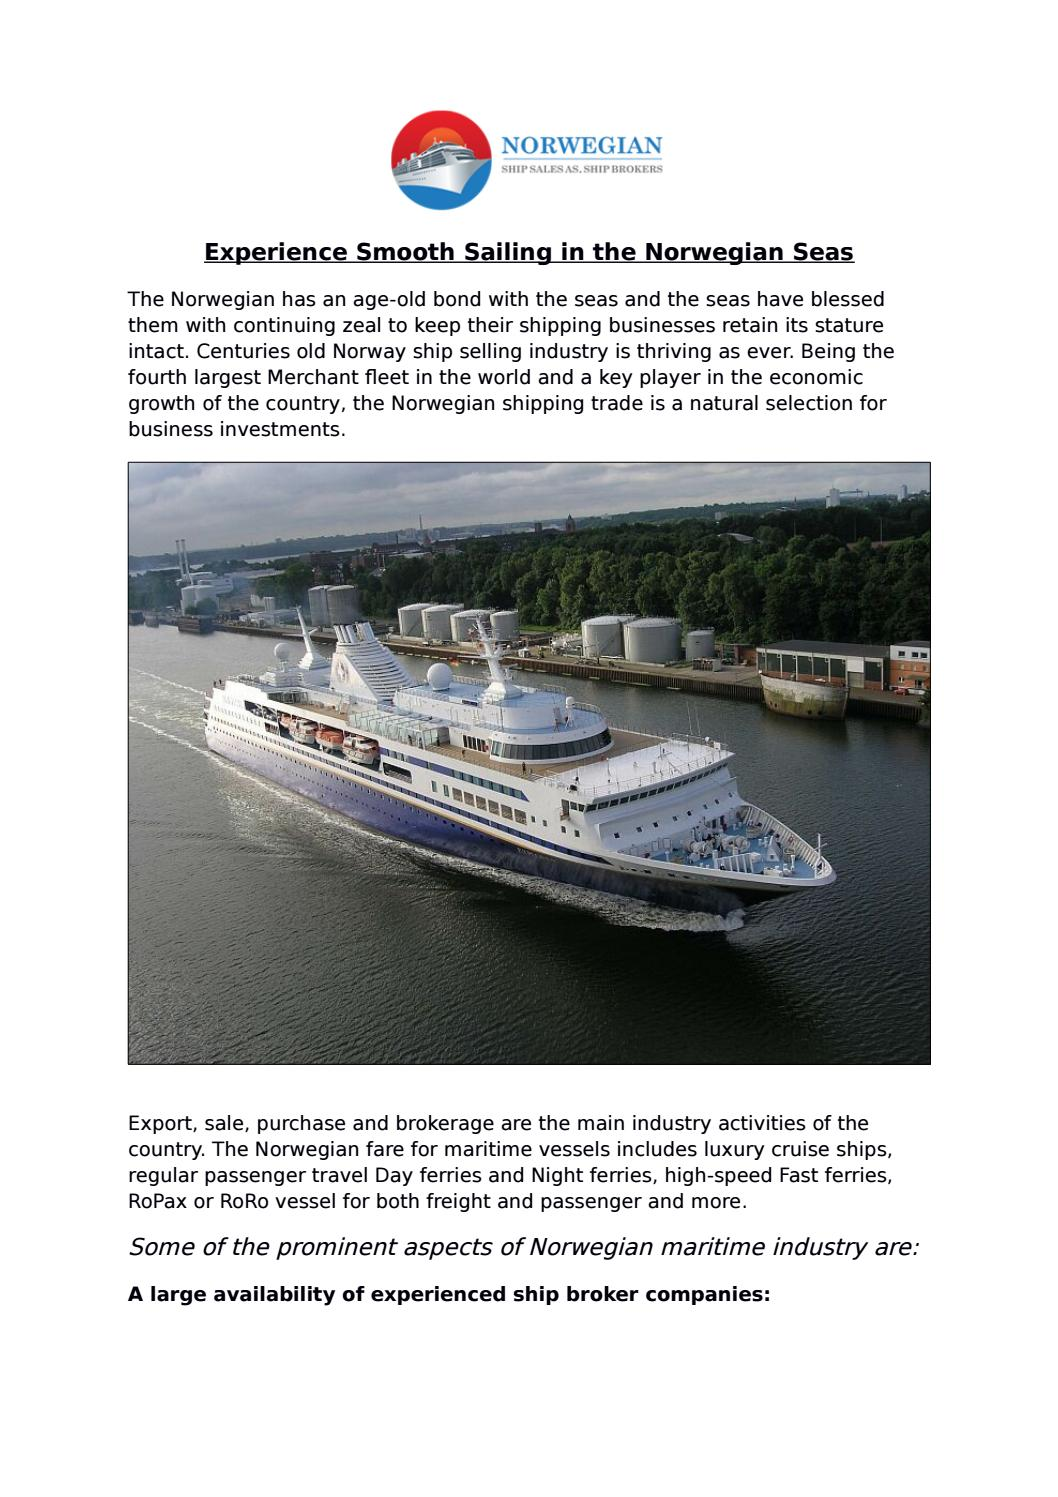 Experience Smooth Sailing in the Norwegian Seas by Norwegian